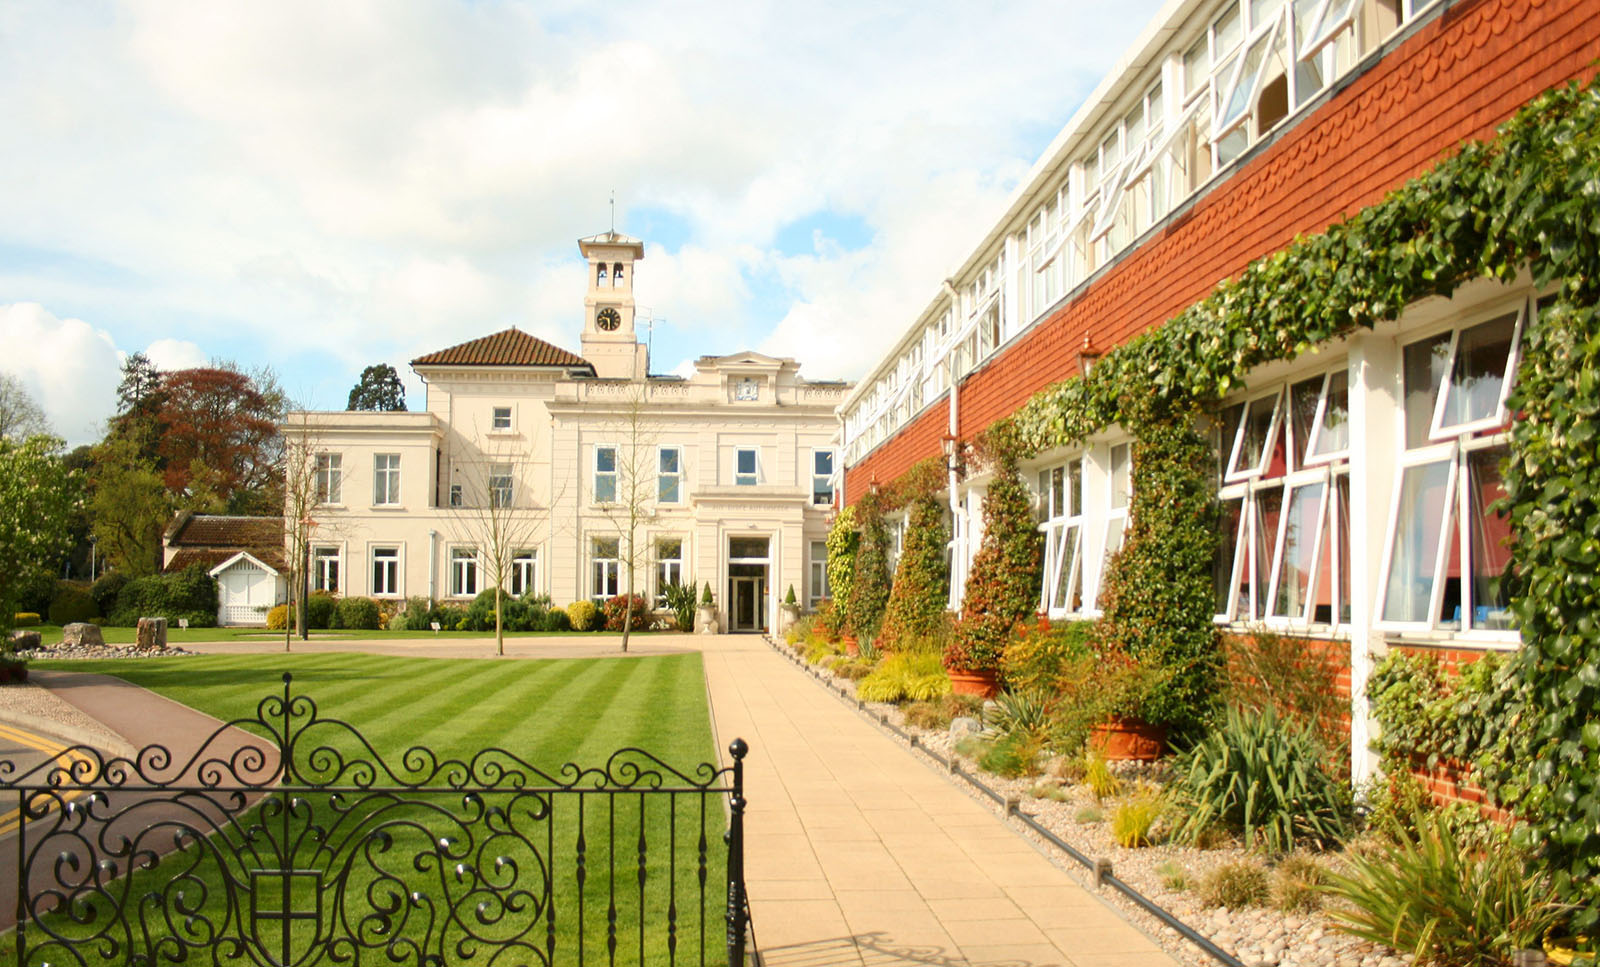 The entrance to St. George's College Weybridge.